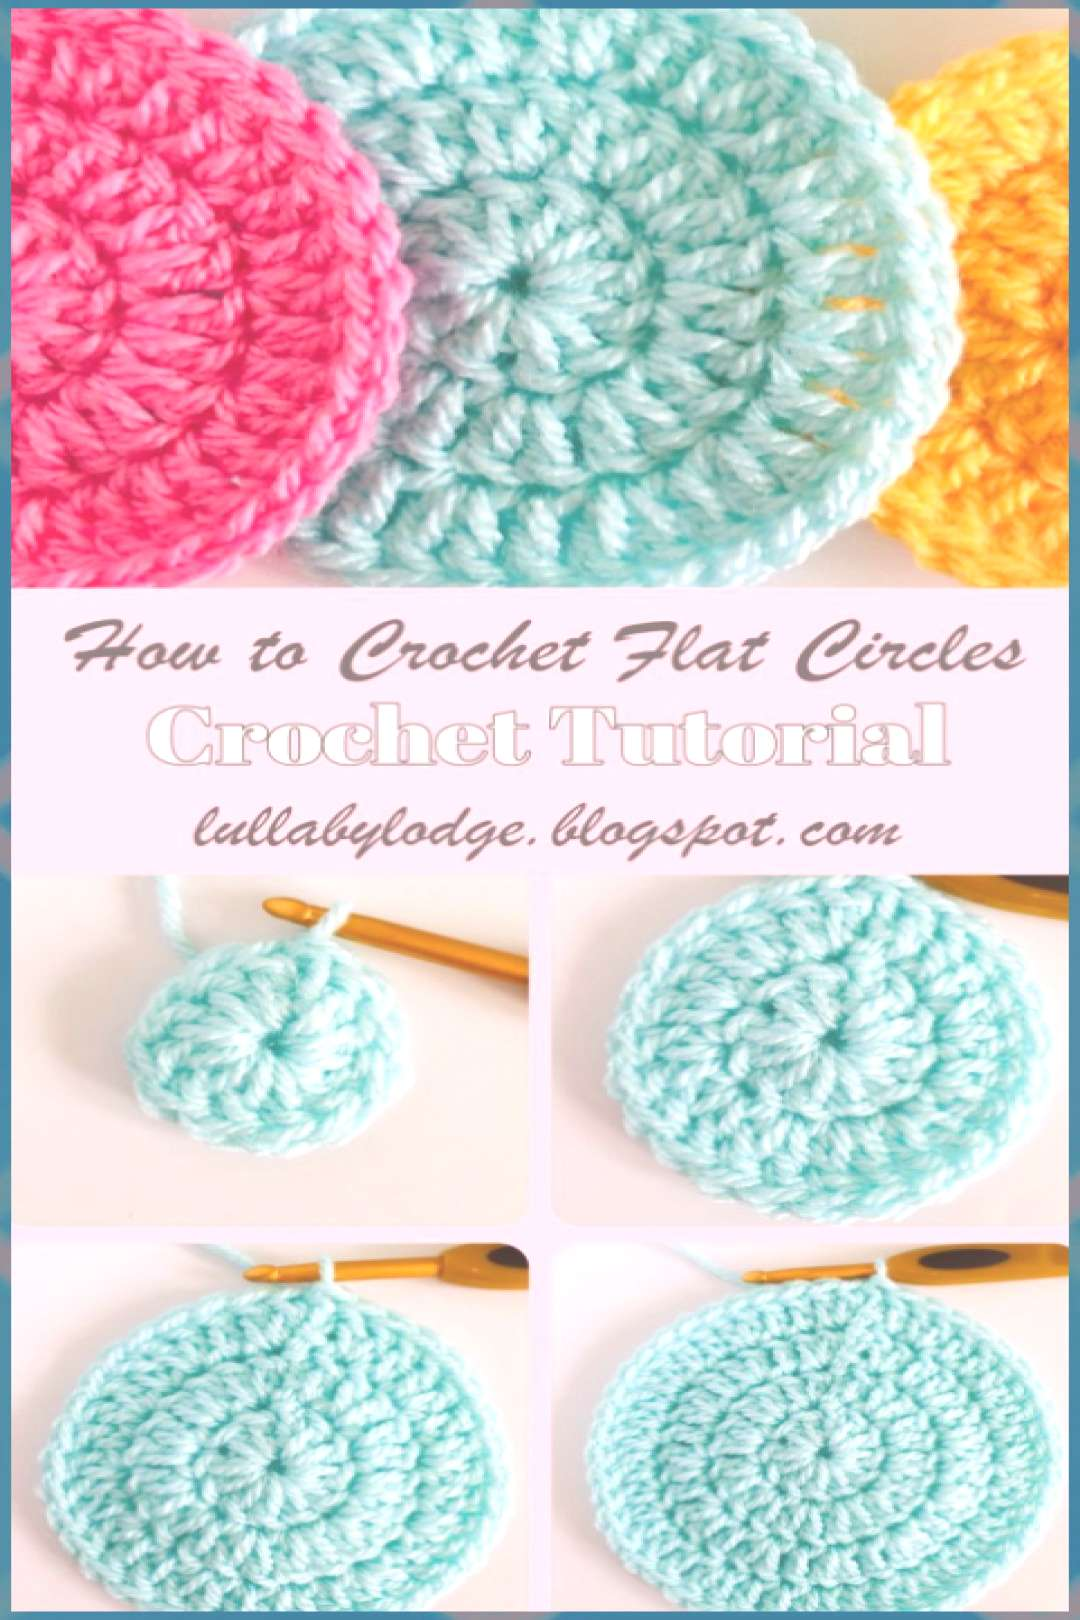 How to crochet flat circles, three different ways...